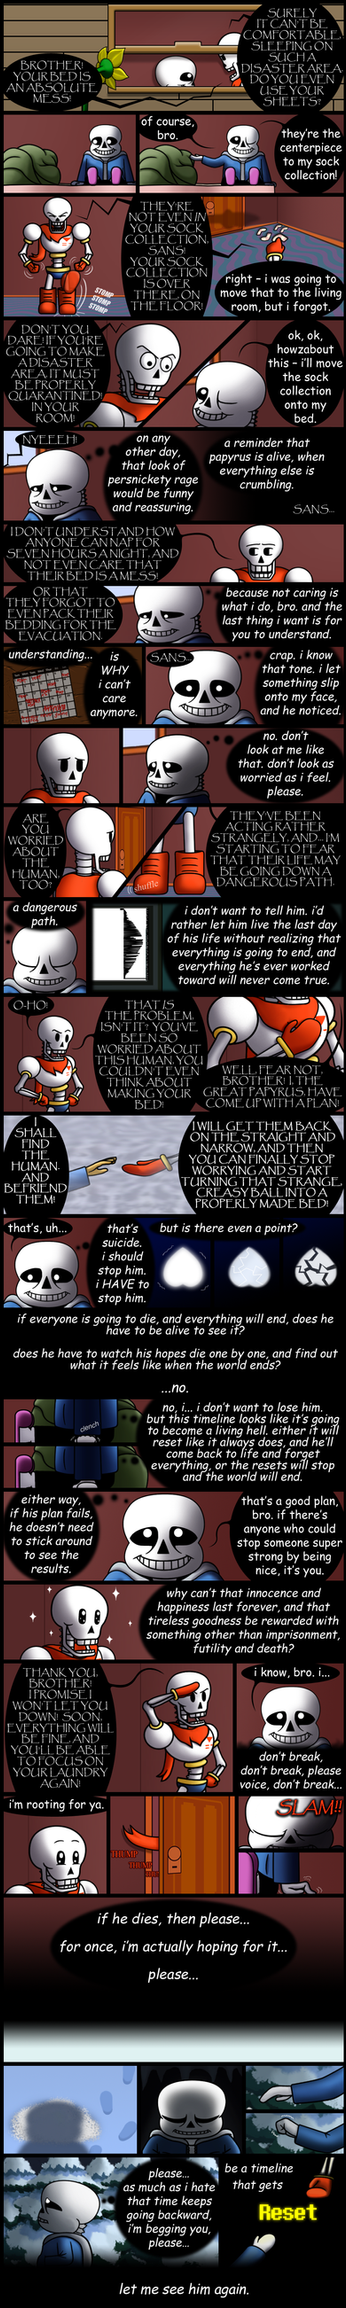 The Best-Laid Plans (Undertale genocide spoilers) by StephOBrien